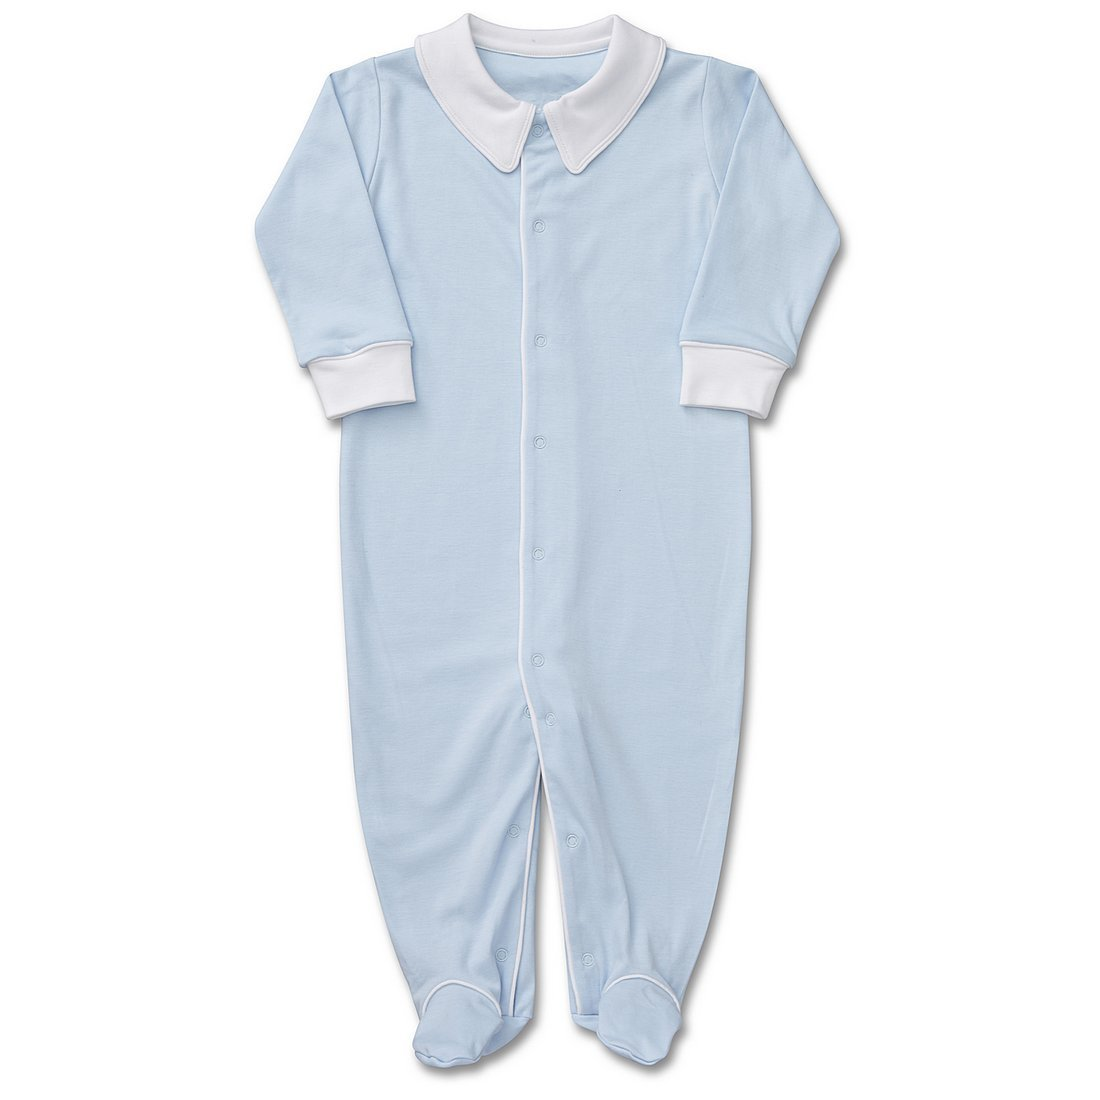 Kelsey MacLean Baby Boys Pima Cotton Coverall w/Feet Blue w/White Piping 6-9M